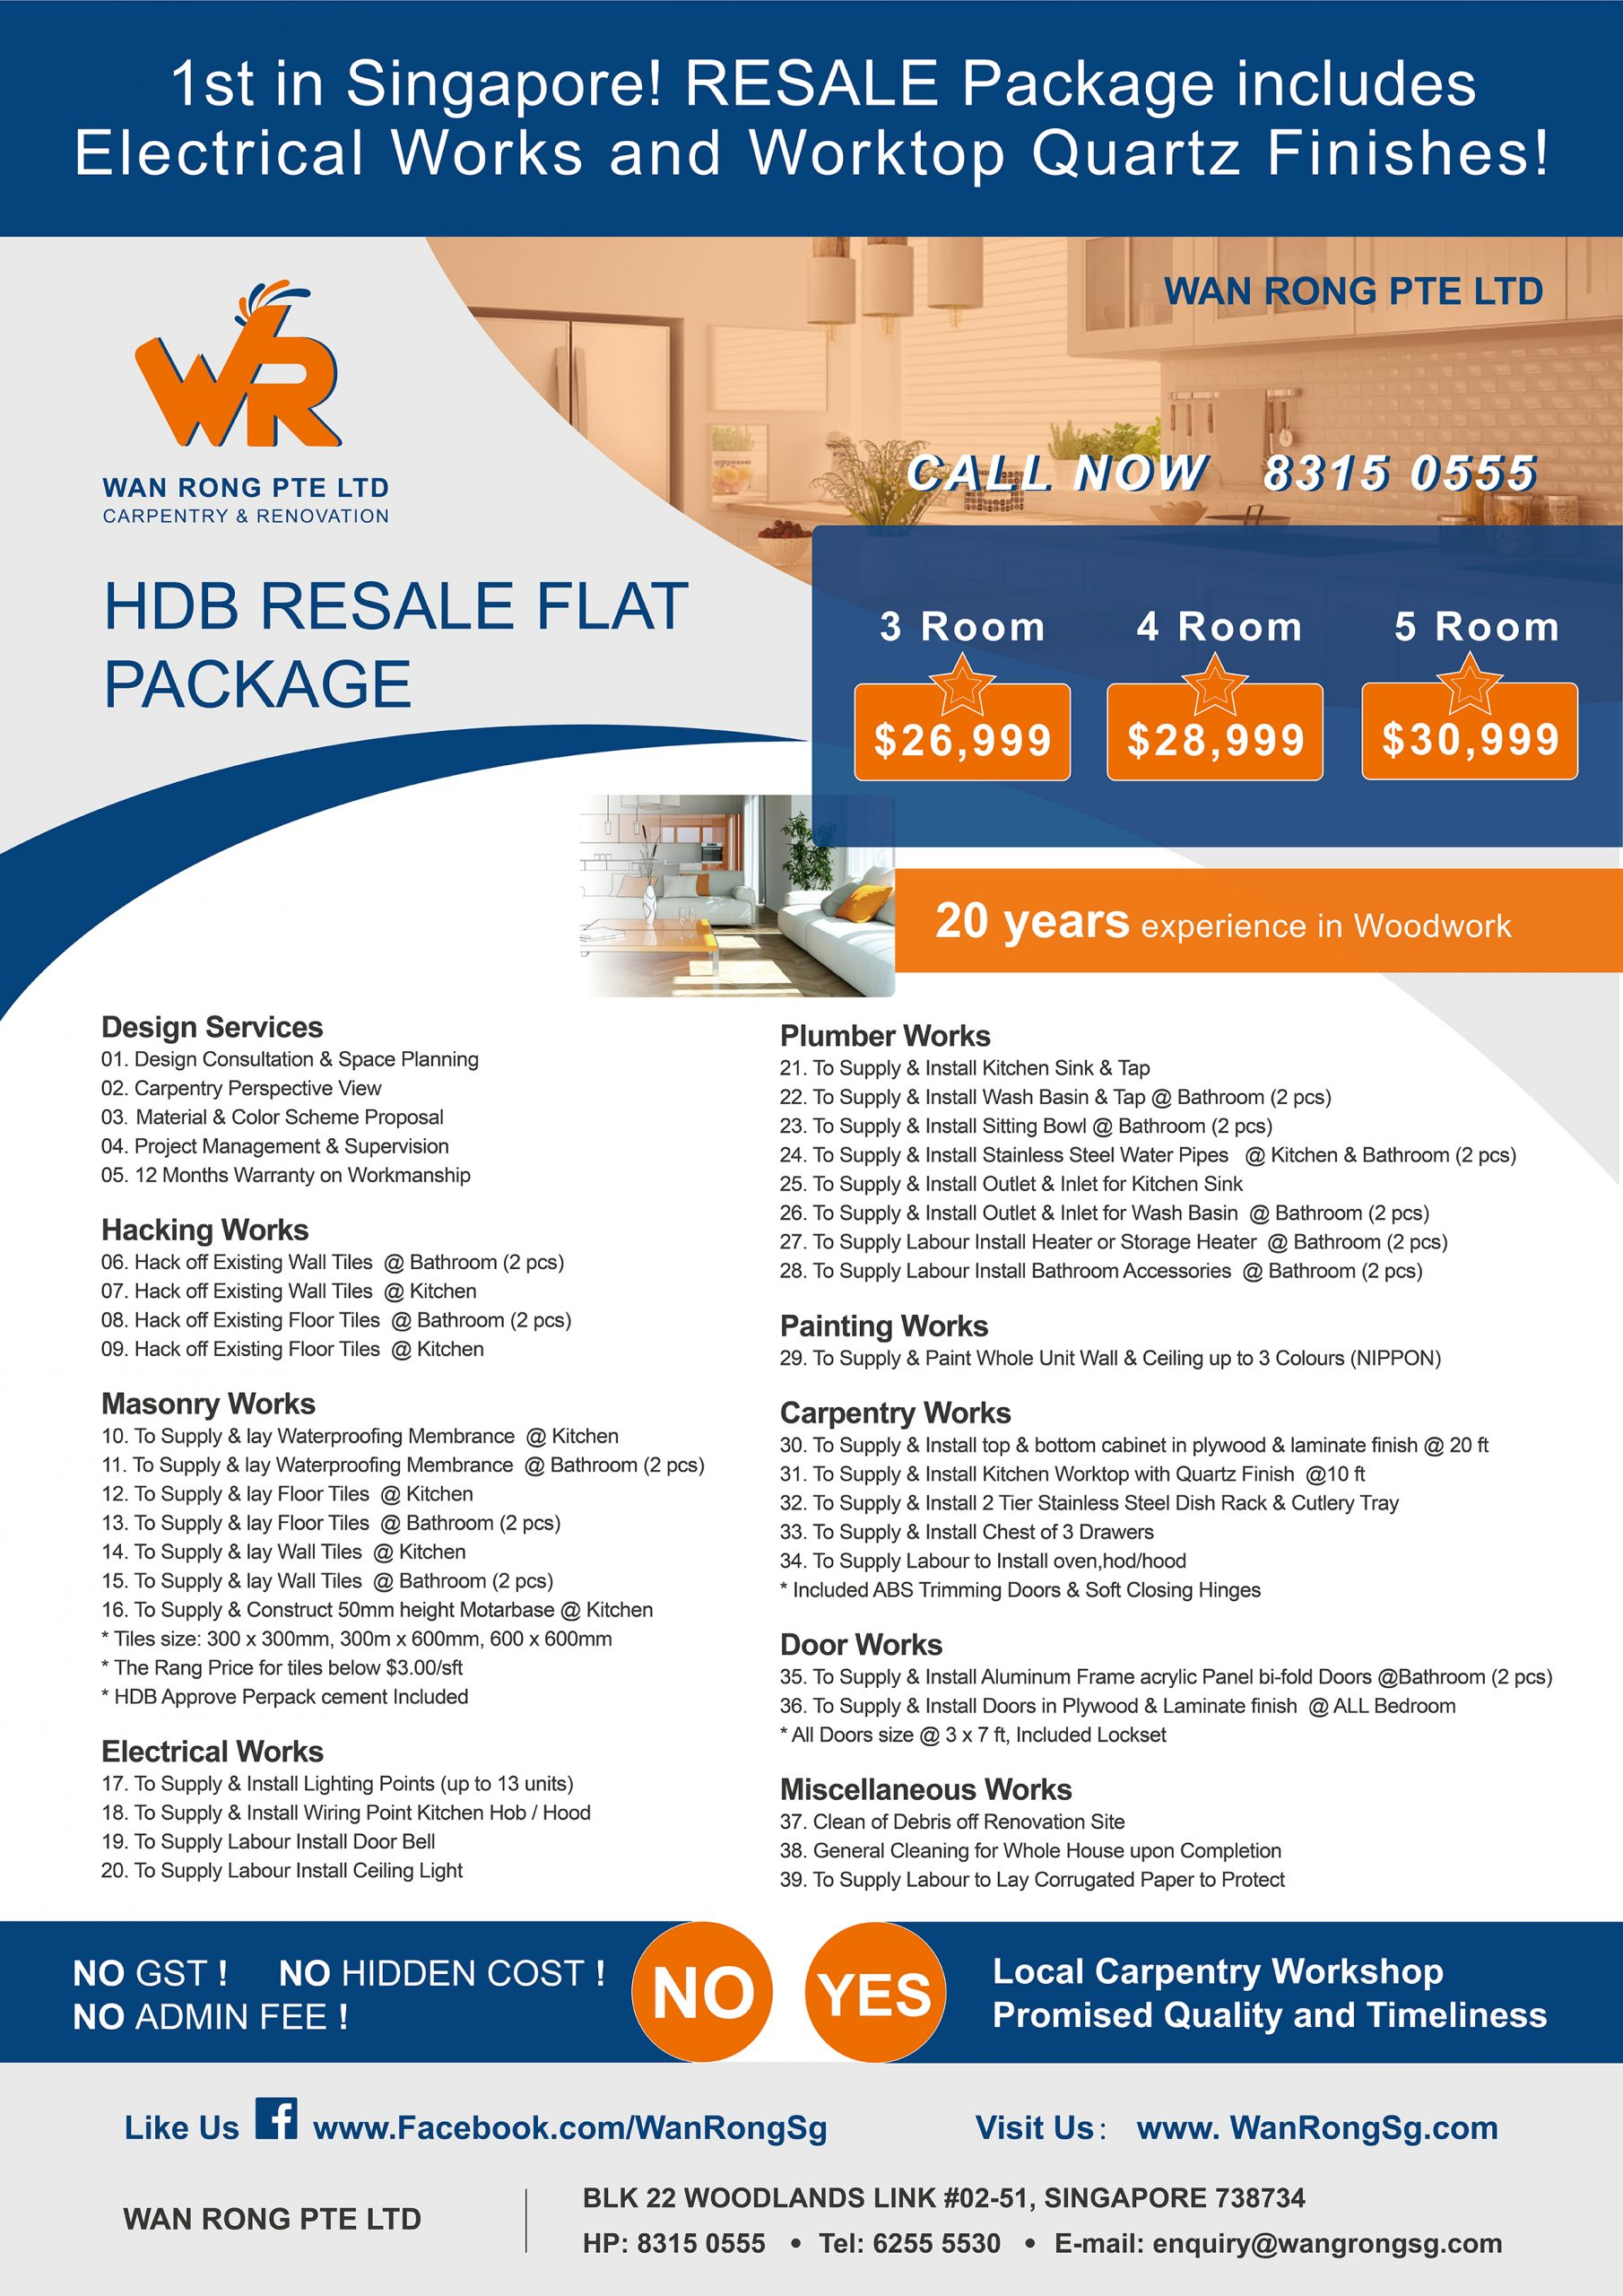 HDB Resale Renovation Package